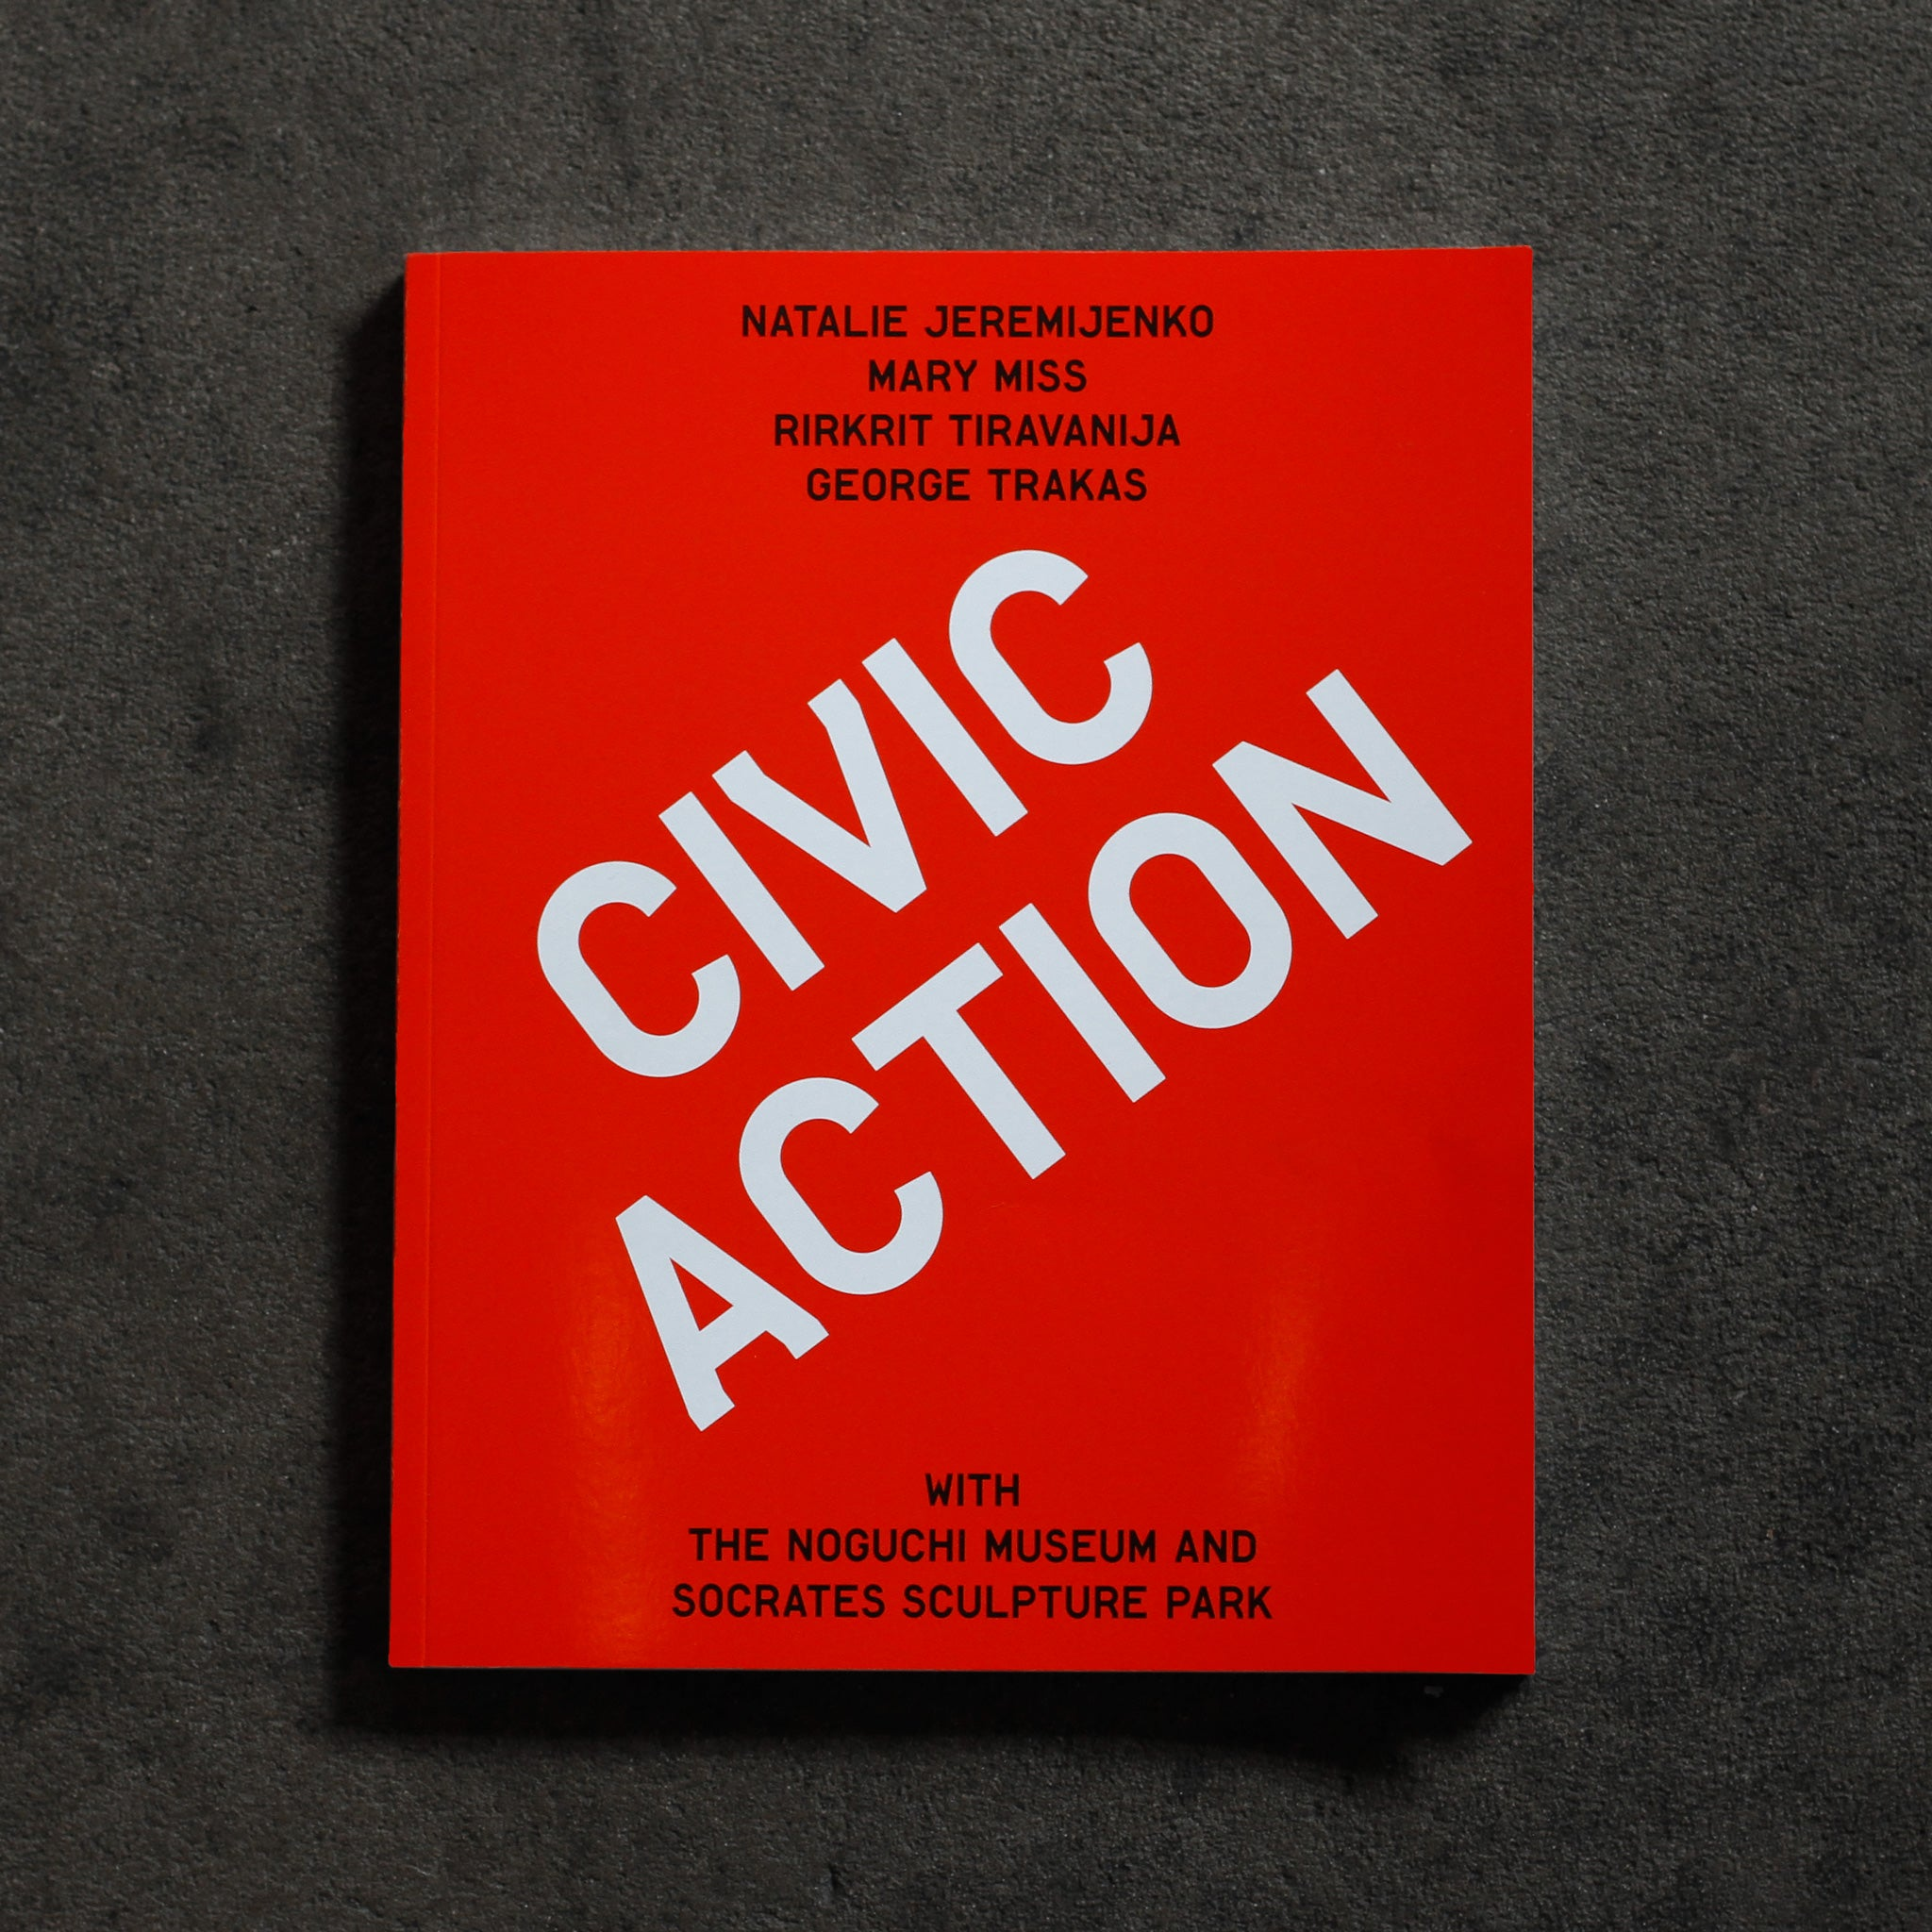 Cover of 'Civic Action,' a bright red-orange solid cover with large diagonal headline 'Civic Action' in white sans serif type, 'Natalie Jeremijenko, Mary Miss, Rikrit Tiravanija, George Trakas' in smaller centered black sans serif type at top and 'with The Noguchi Museum and Socrates Sculpture Park' in same black centered type at bottom